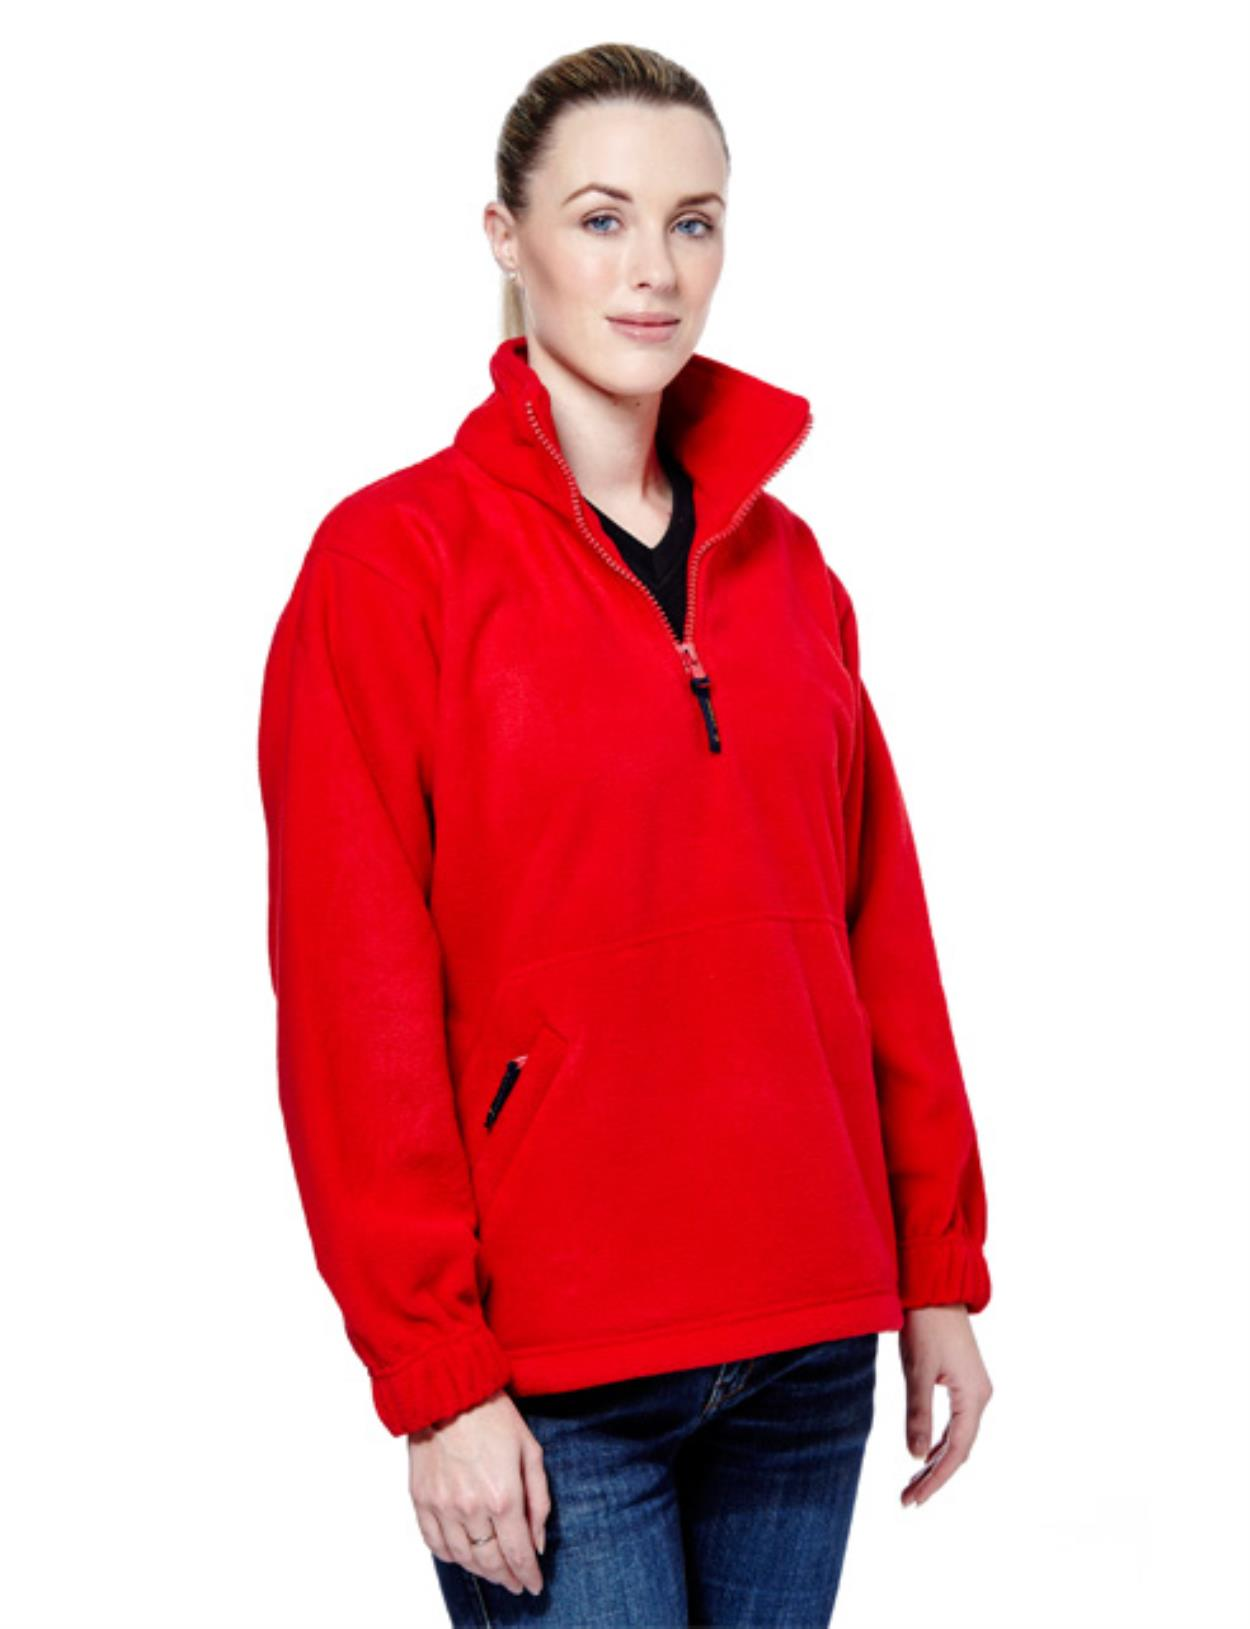 UC602 - Premium 1/4 Zip Fleece